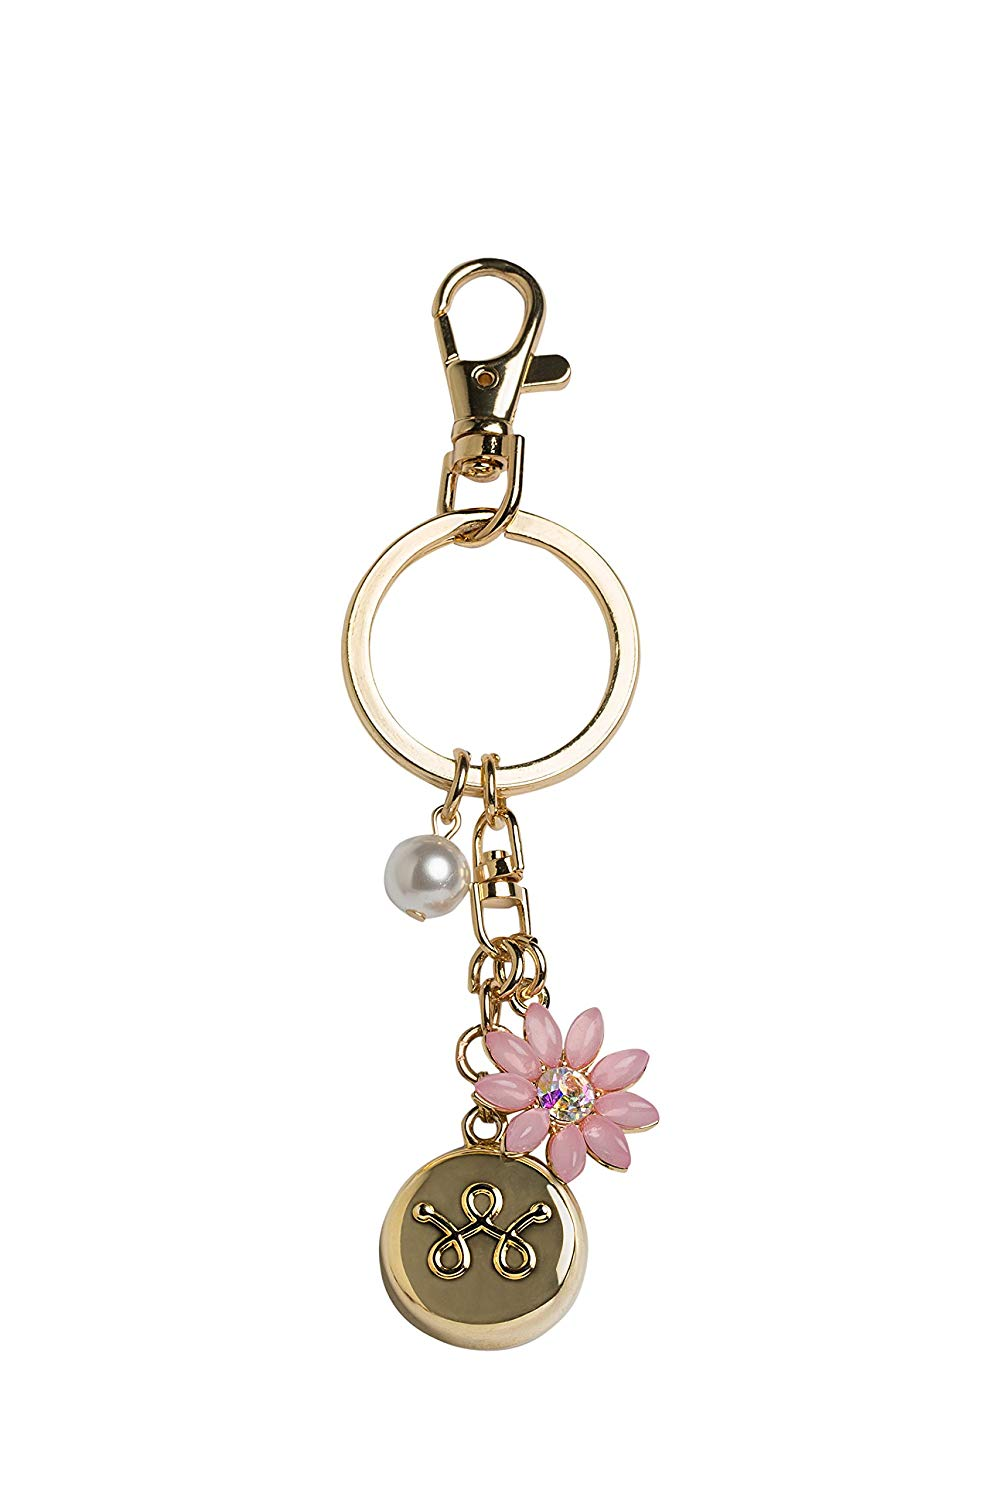 invisaWear Smart Jewelry gold flower keyhain